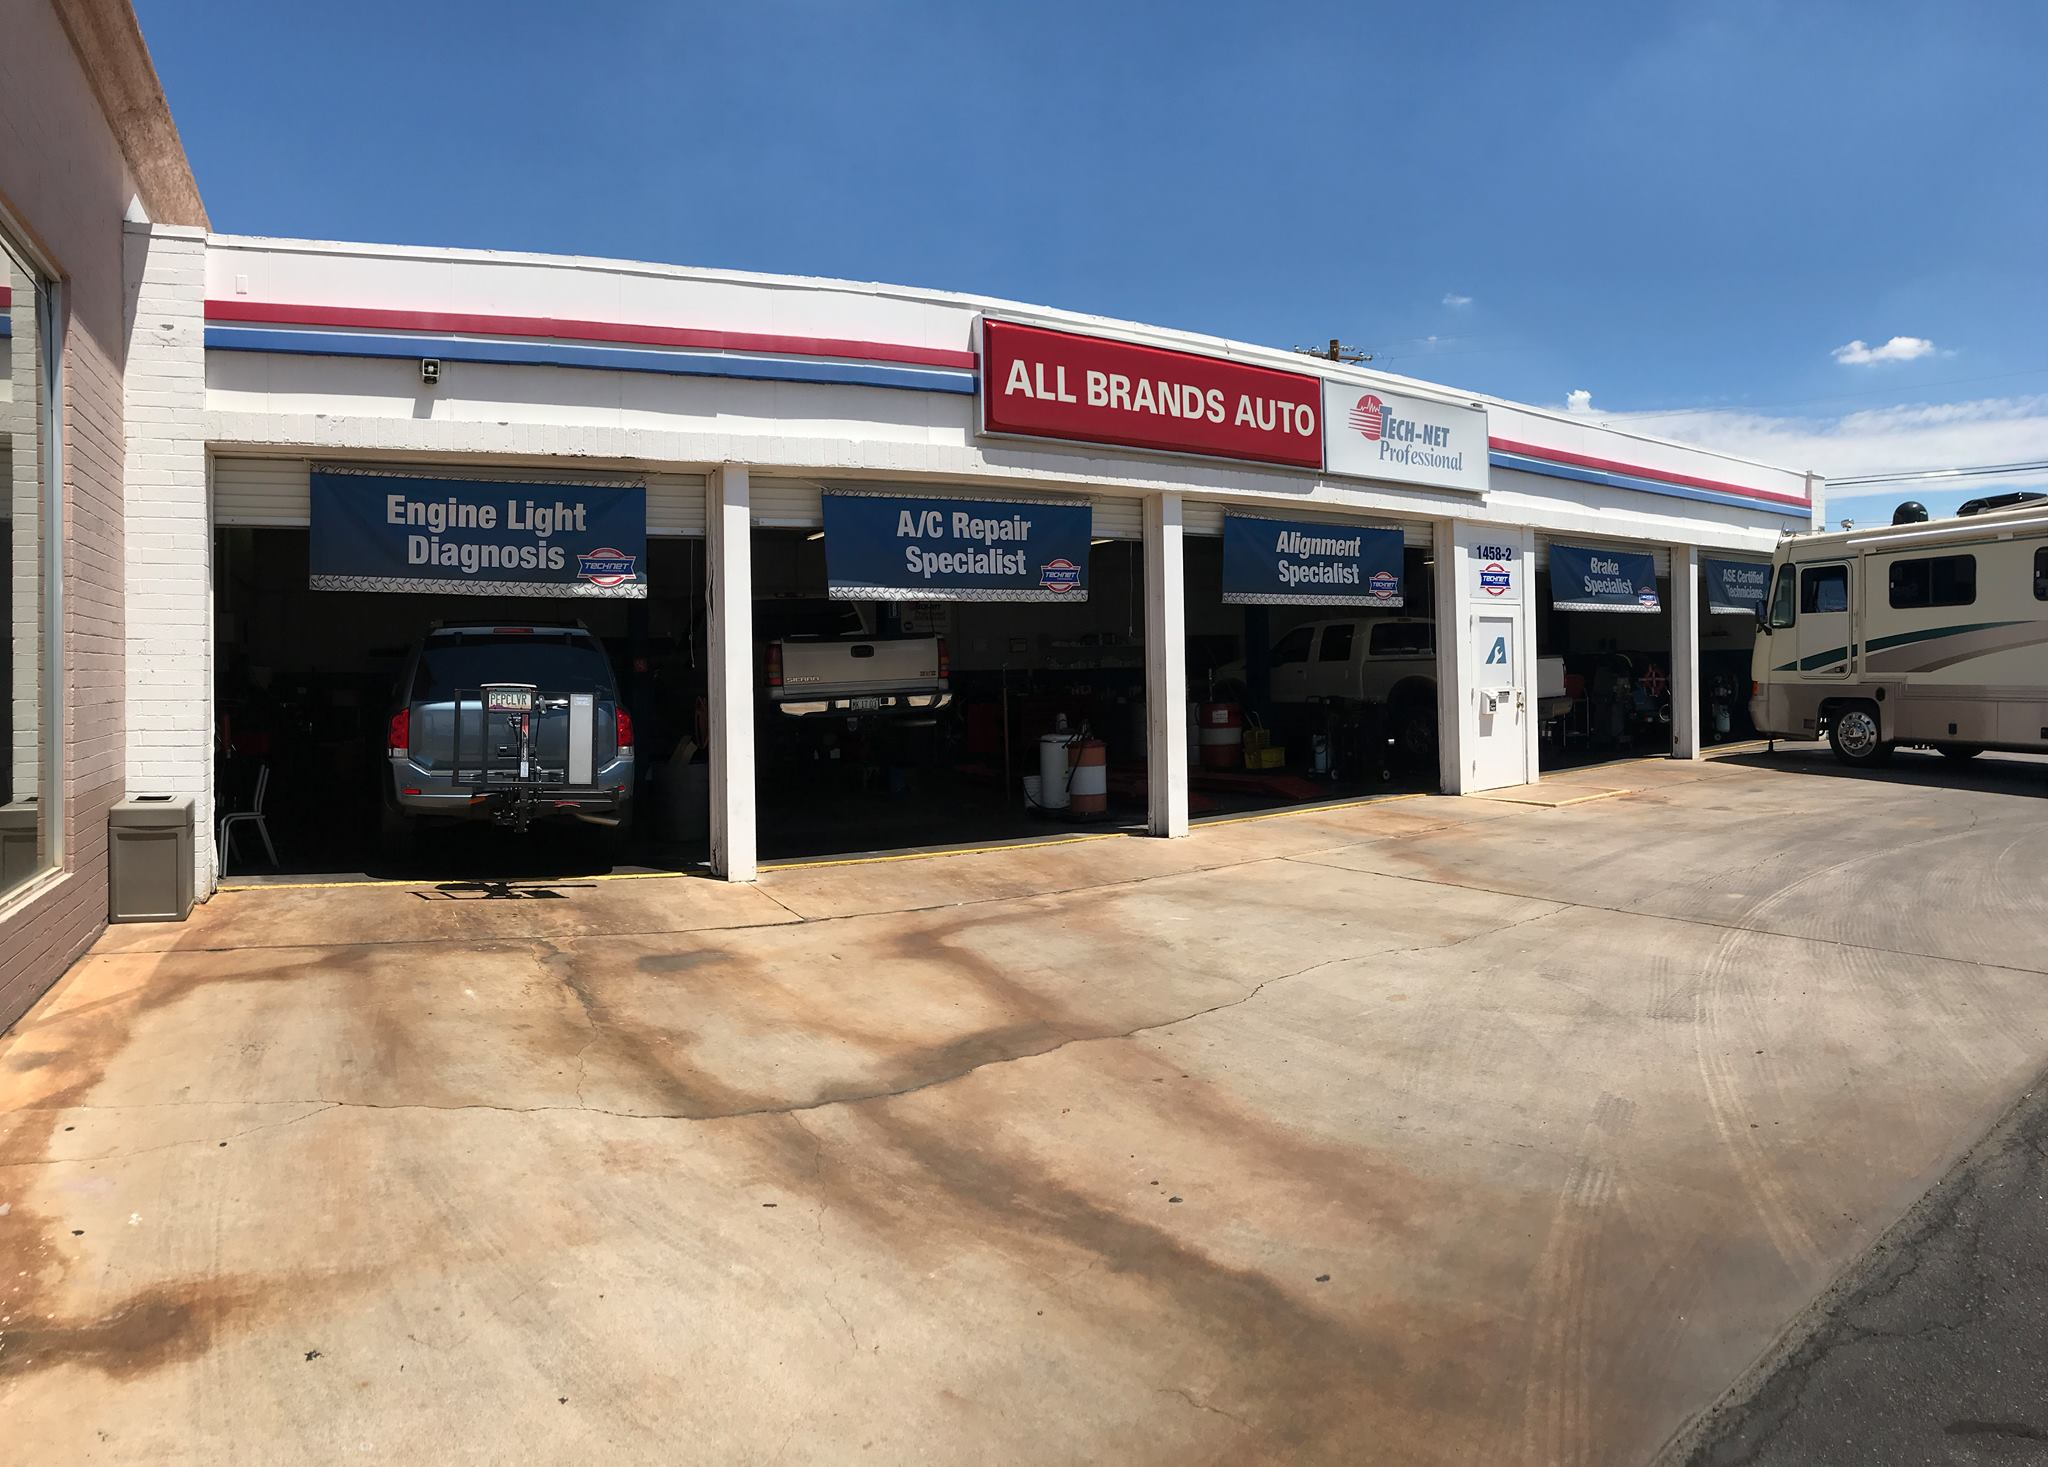 All Brands Auto | Auto Repair at 1458 E Main St - Mesa AZ - Reviews - Photos - Phone Number